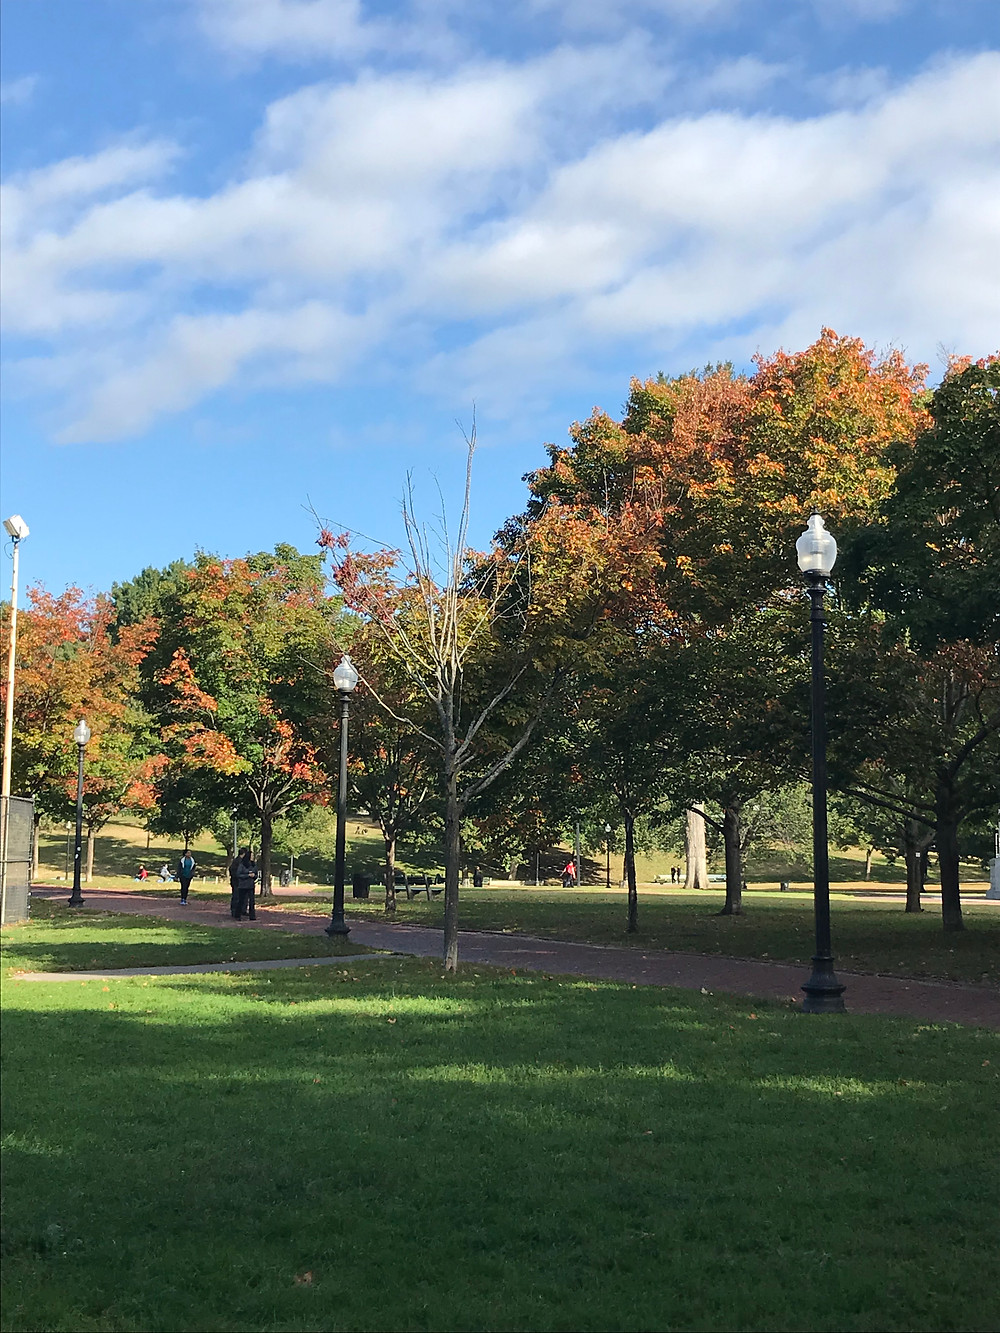 A photograph of Autumnal trees on the edge of Boston Common.